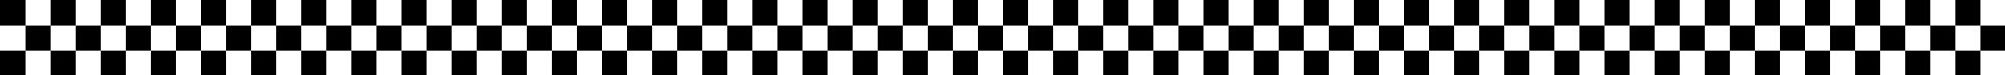 checkered-footer.jpg